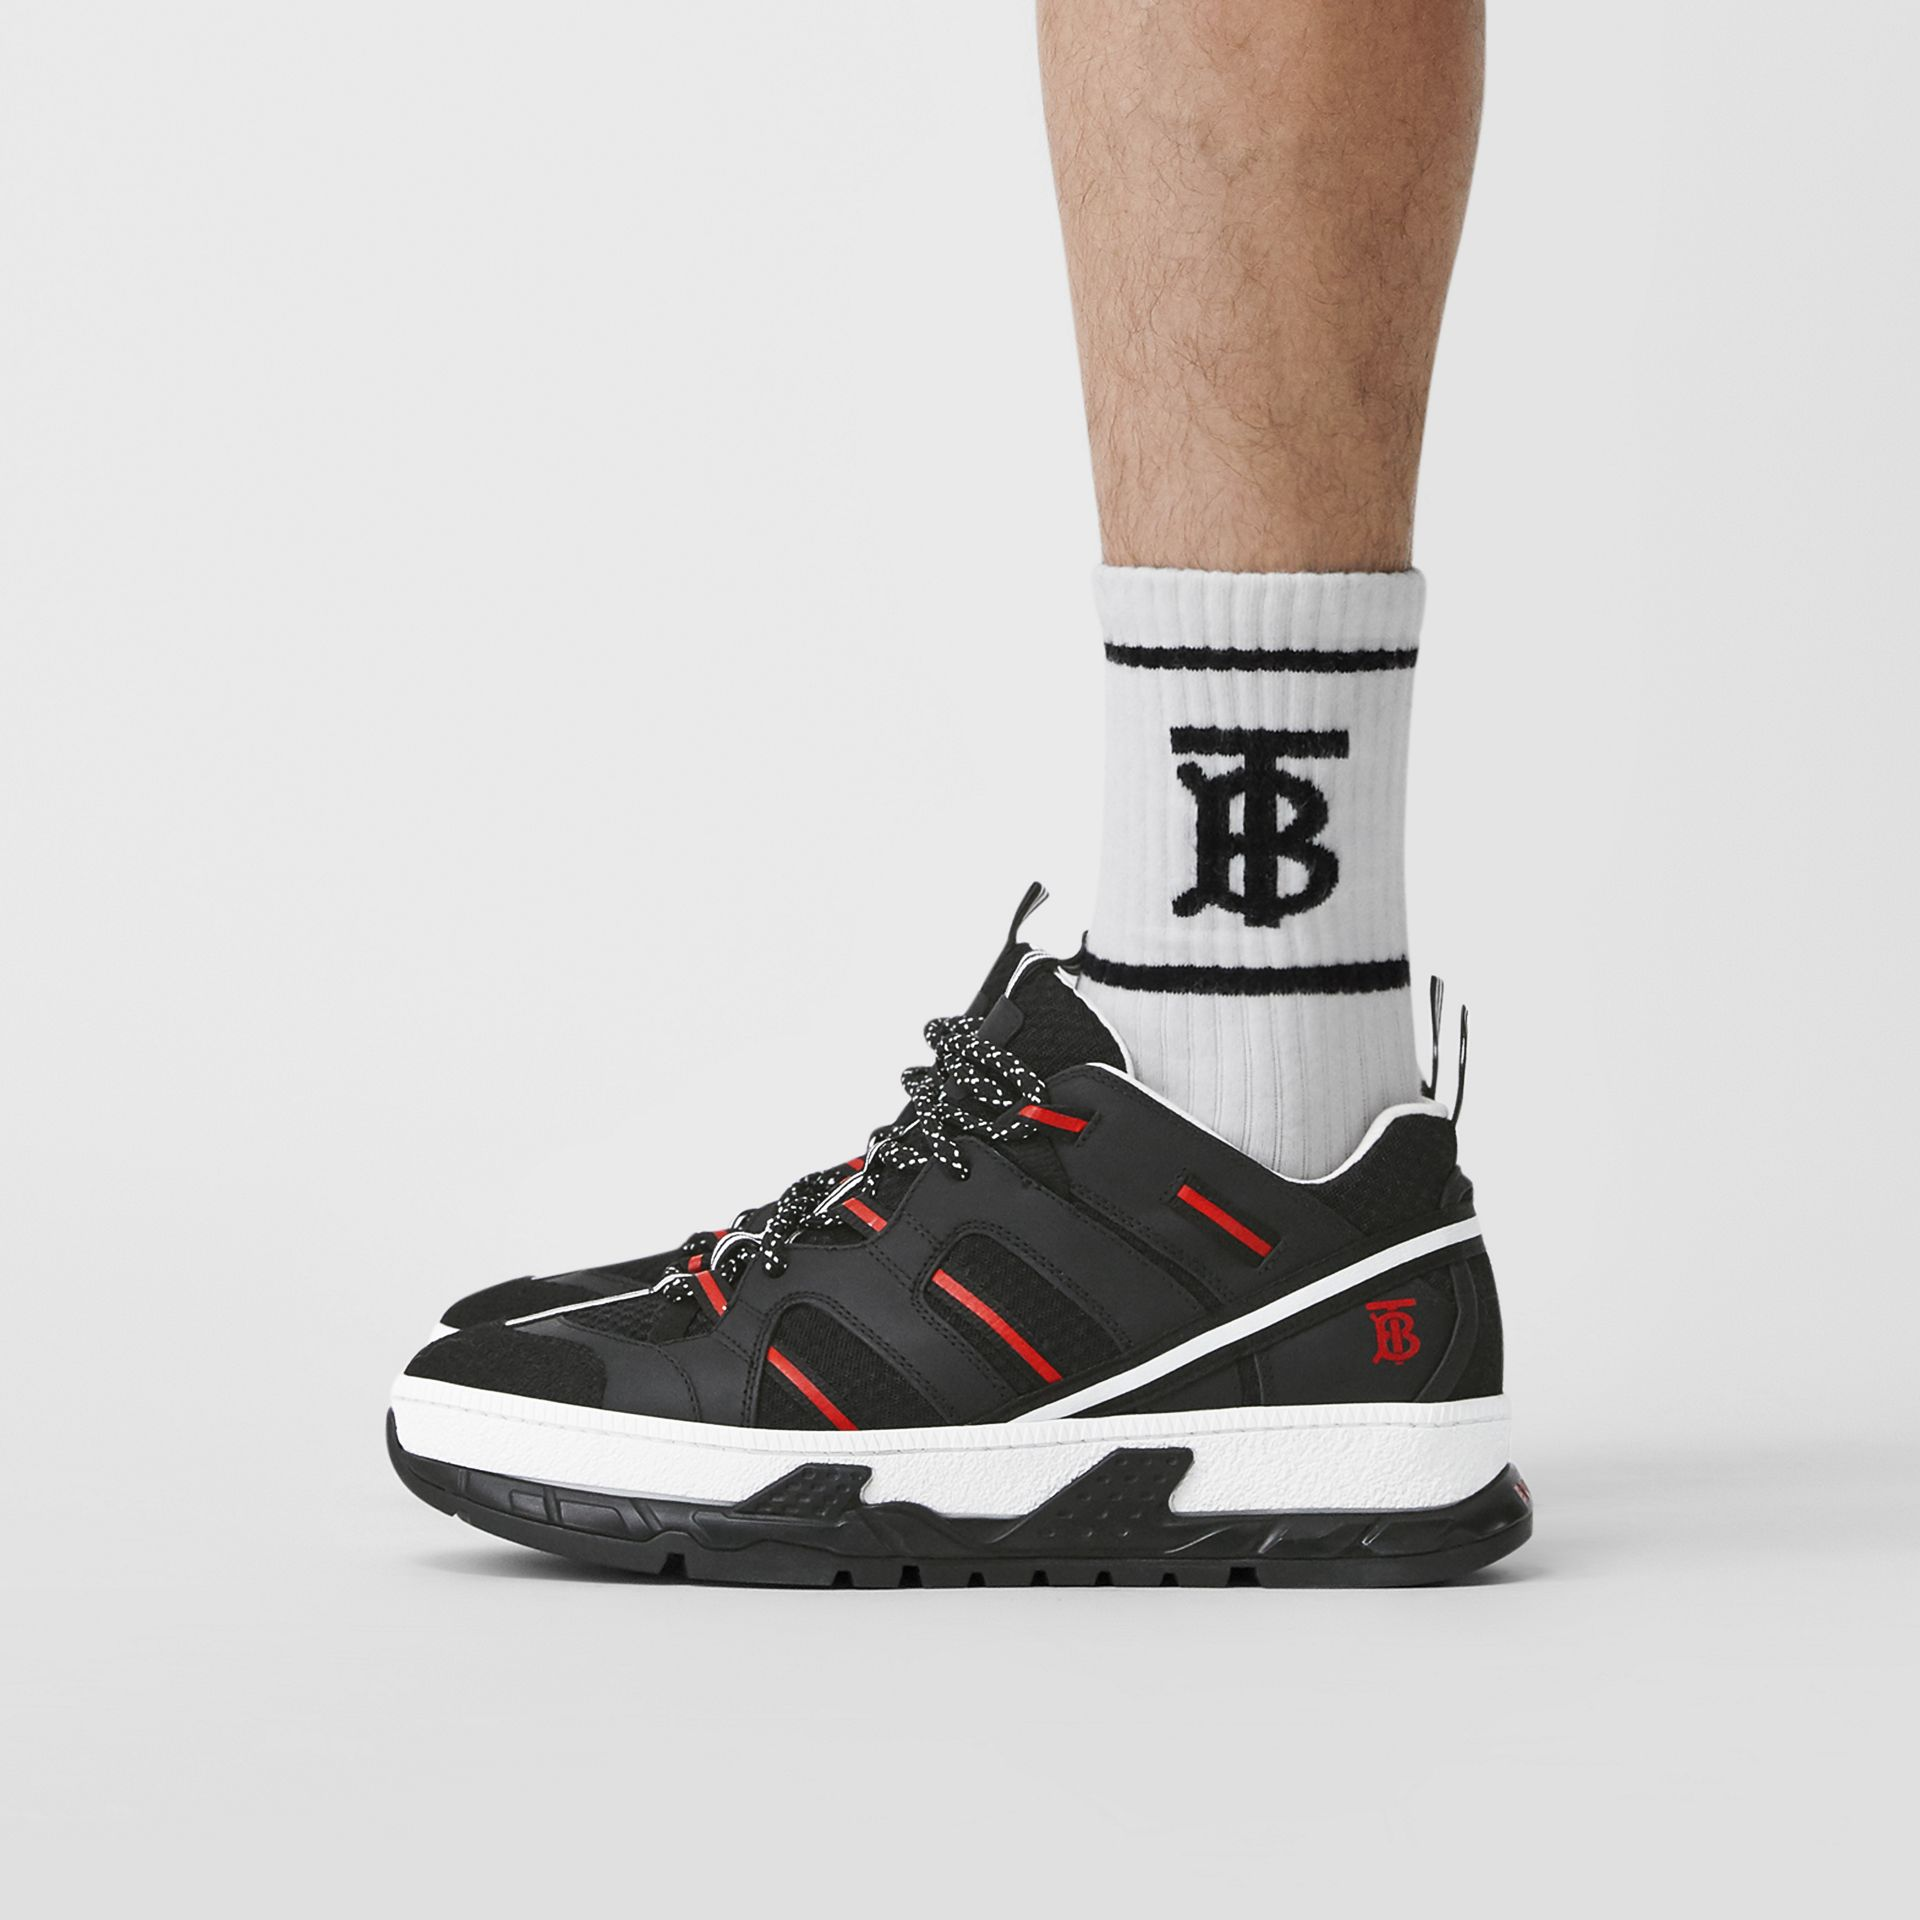 Sneakers Union en filet et nubuck (Noir/rouge) - Homme | Burberry - photo de la galerie 2